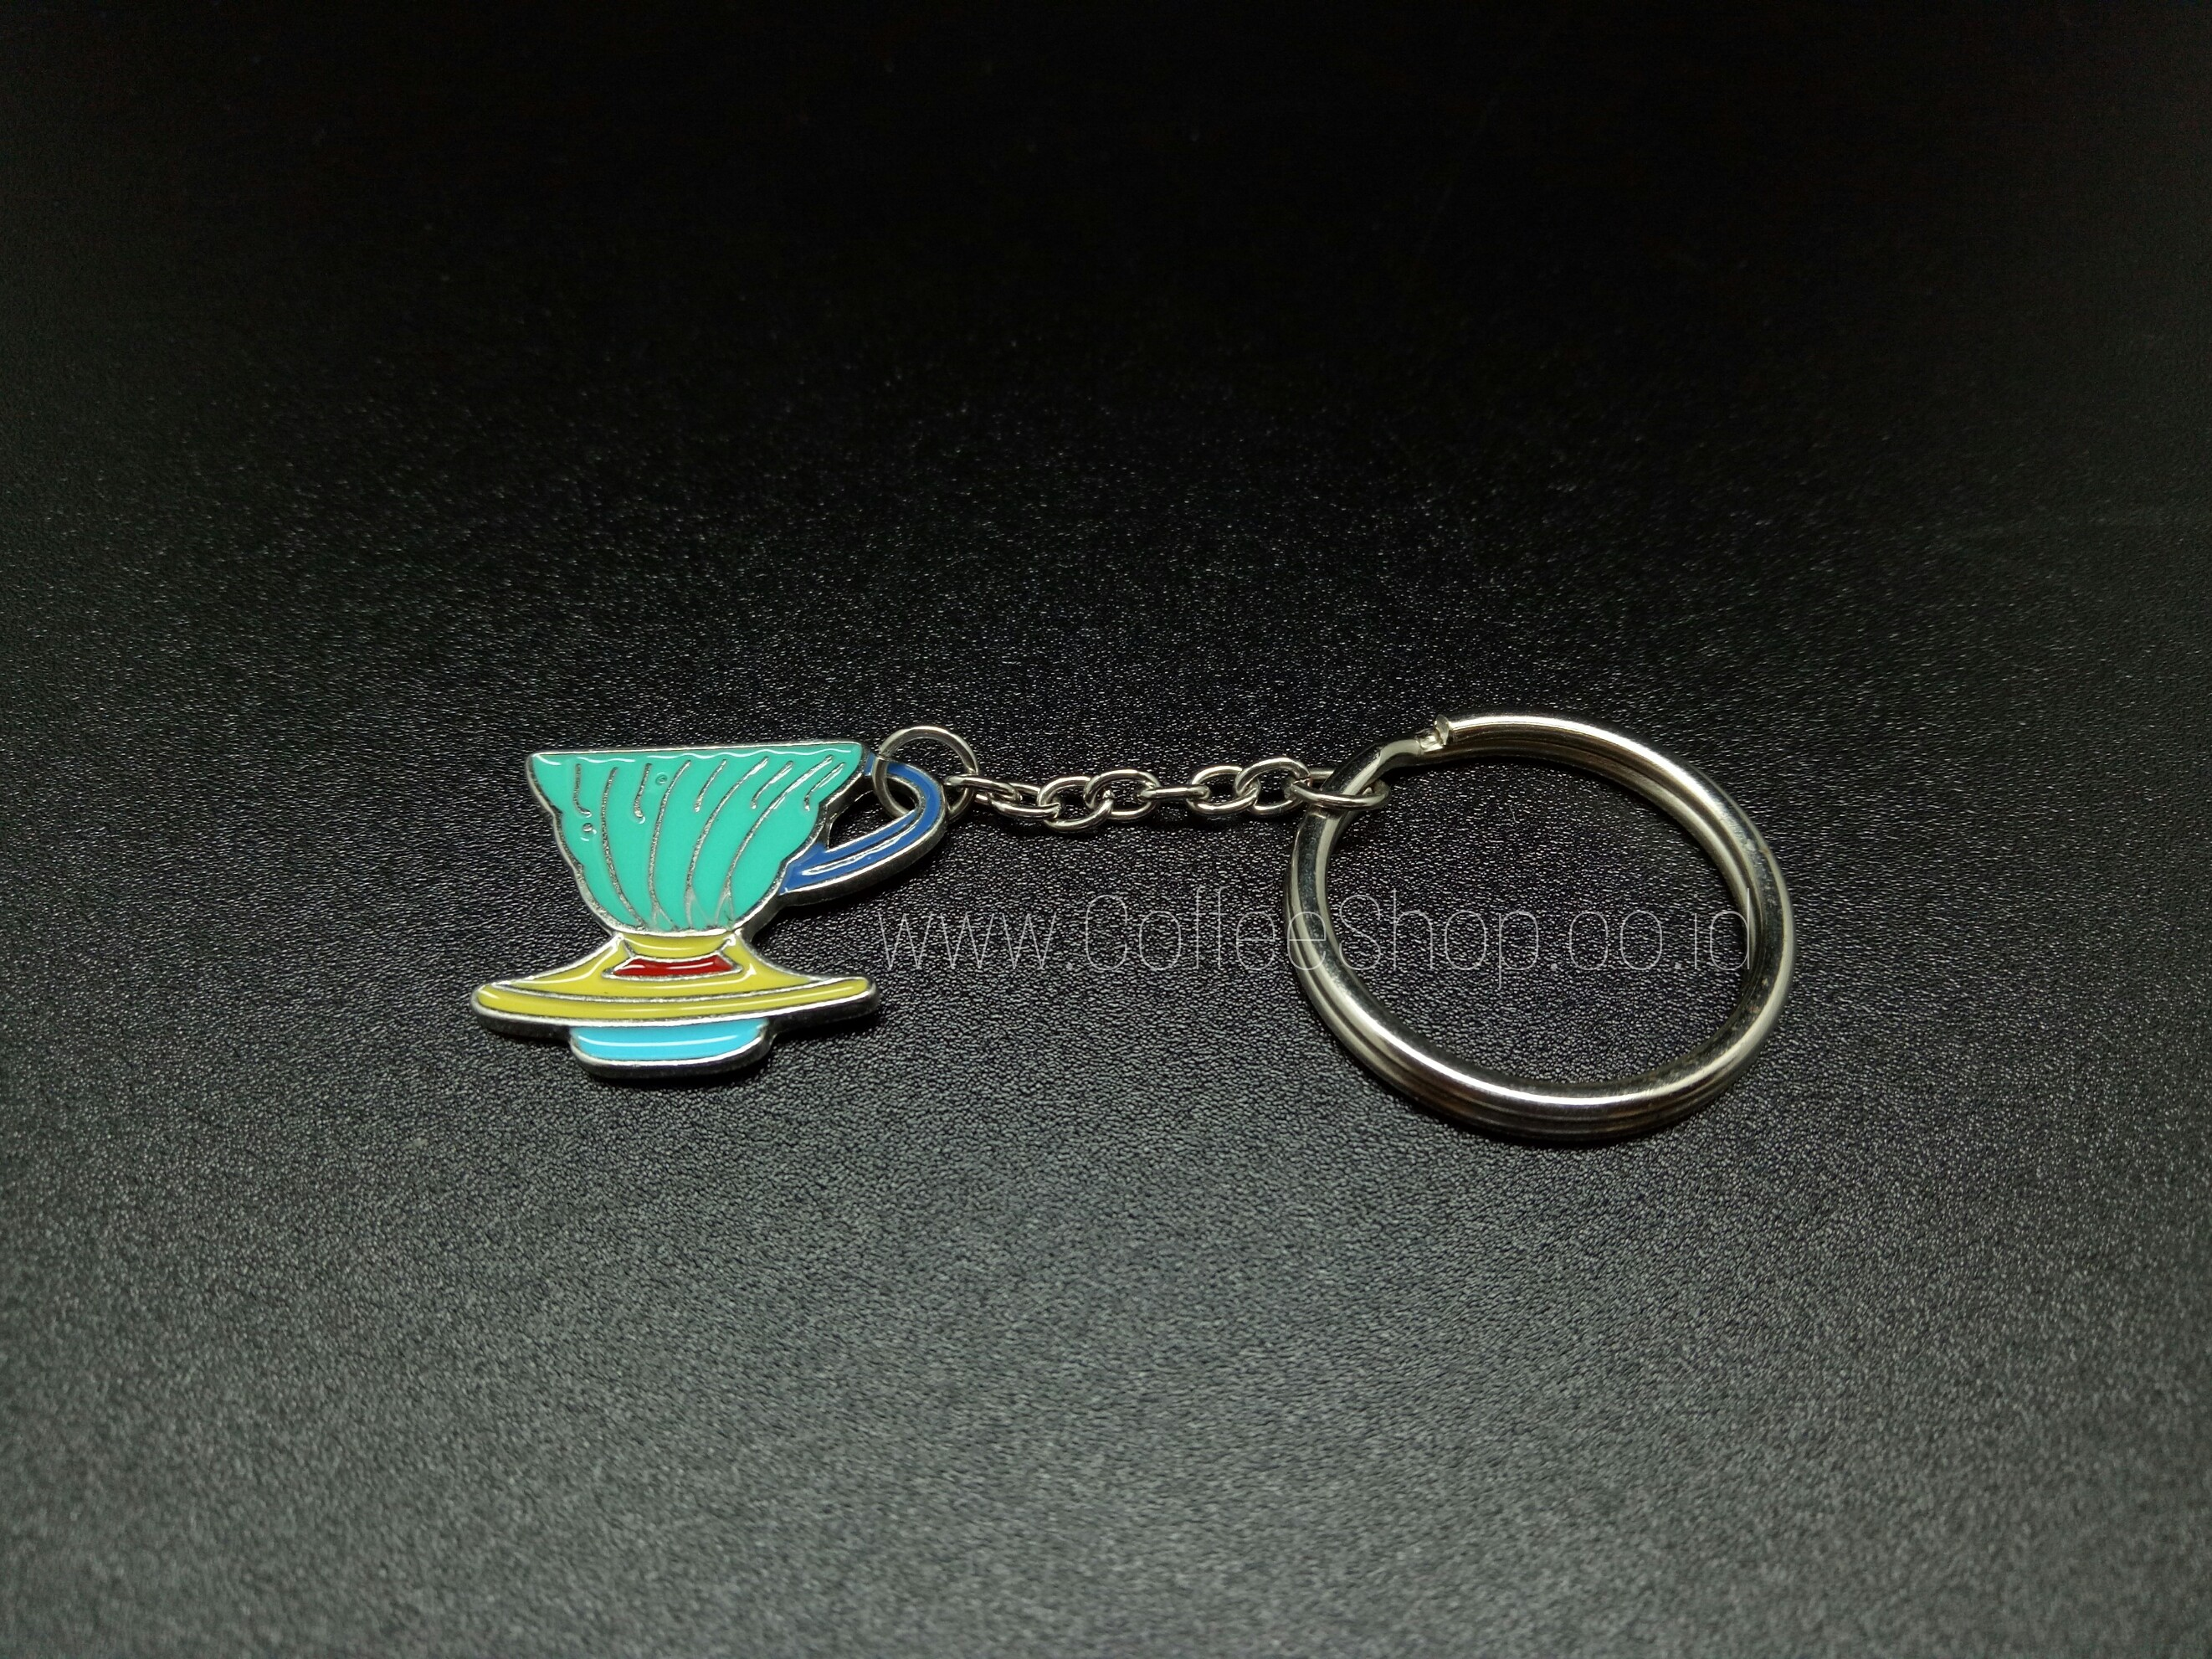 Keychain Alloy V60 Model